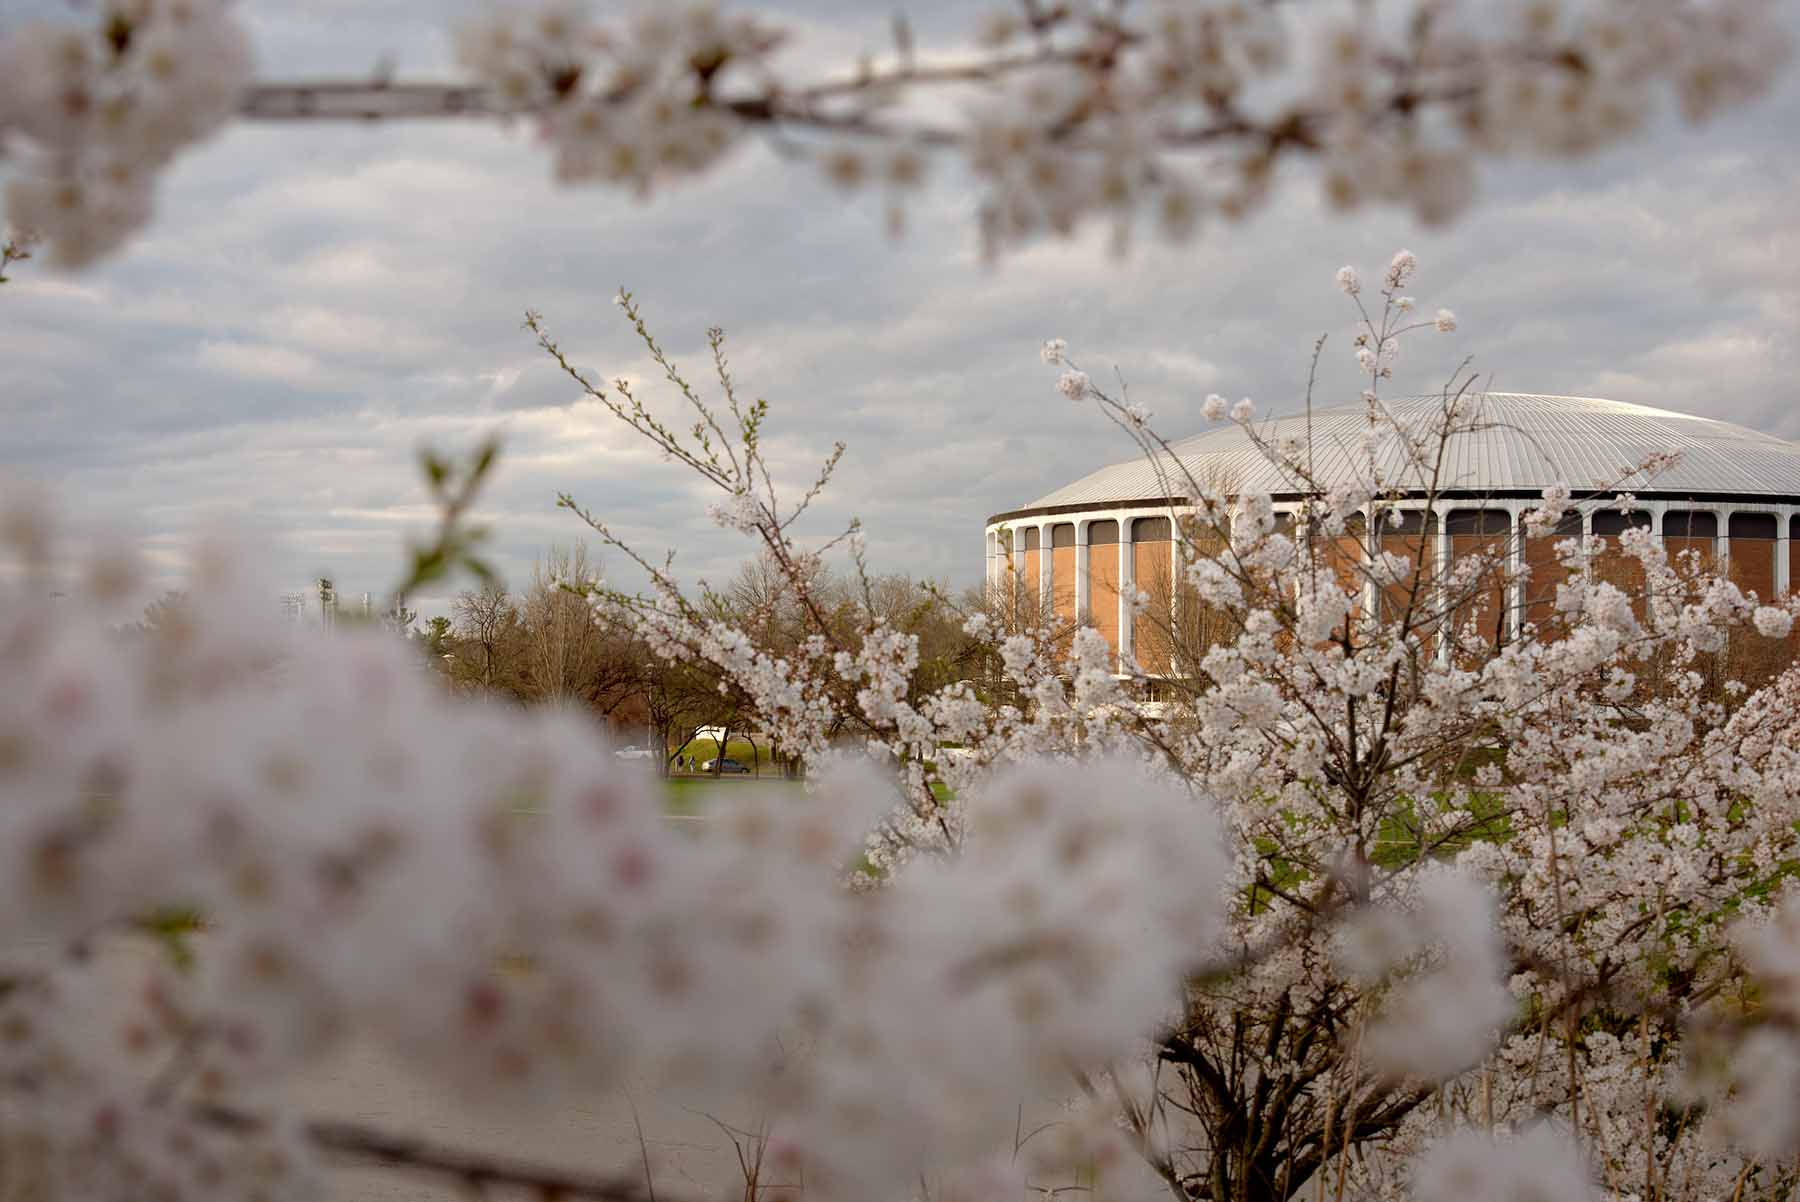 The Convocation Center at Ohio University as viewed through flowering cherry blossoms